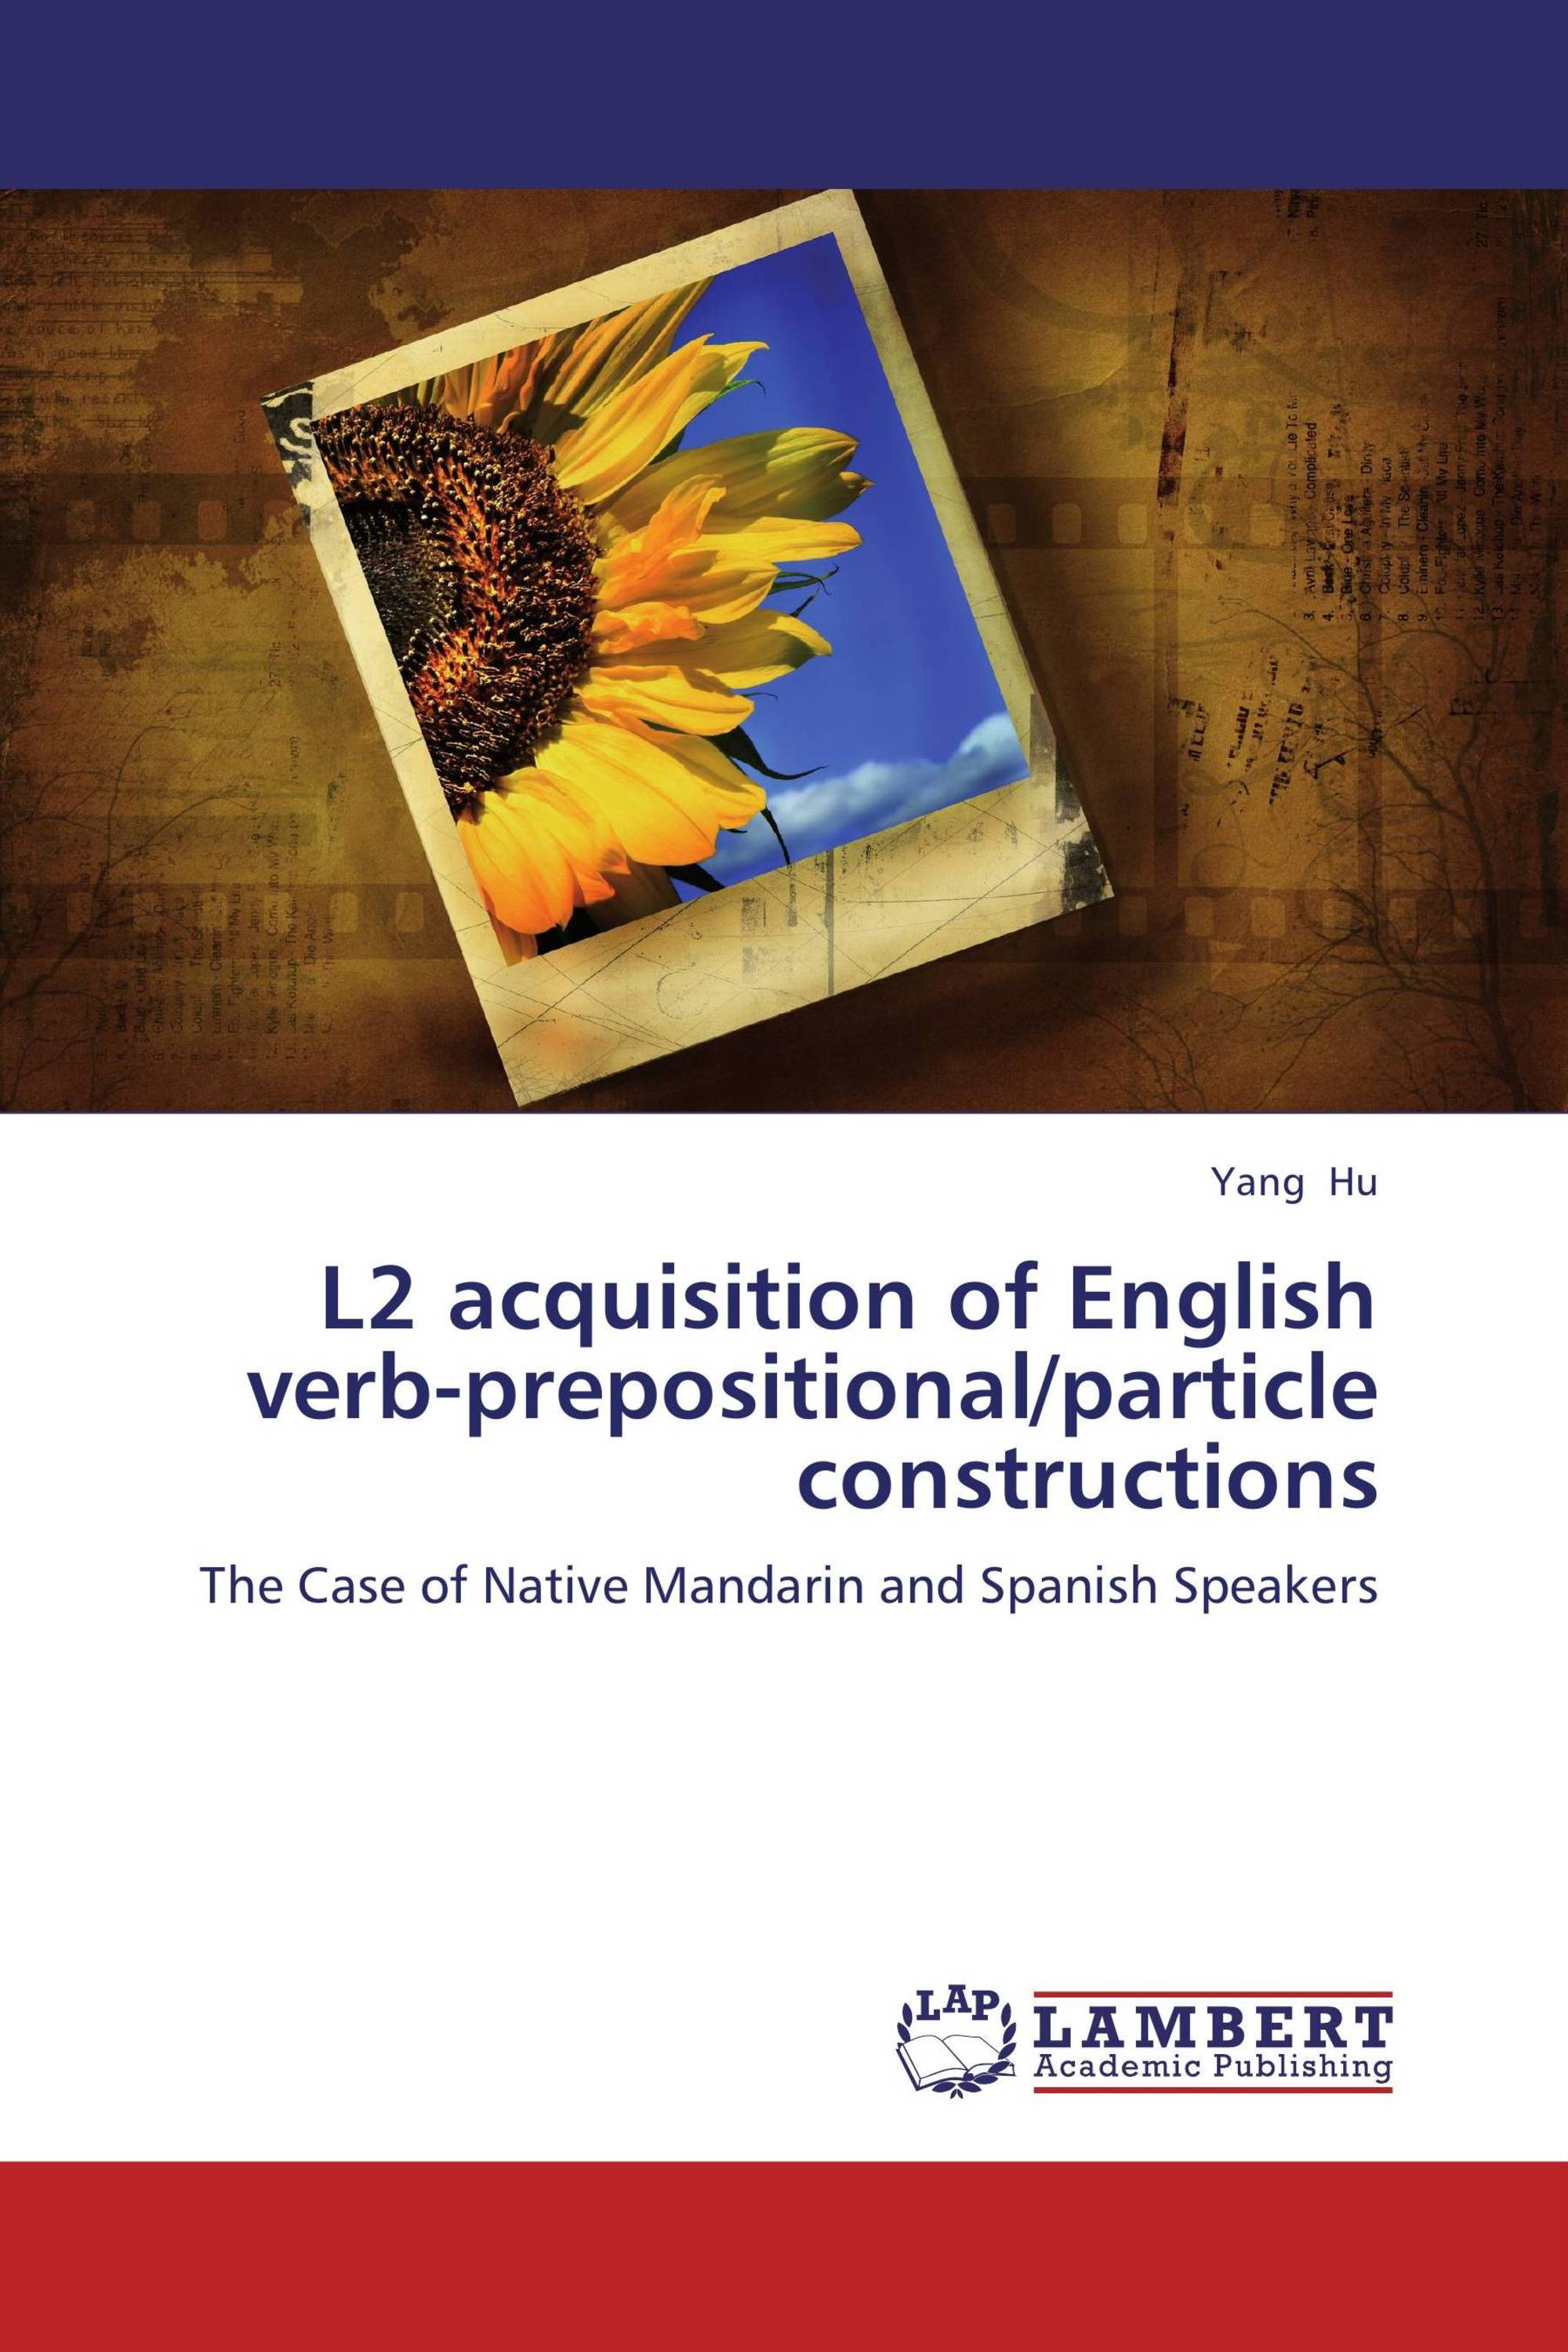 L2 acquisition of English verb-prepositional/particle constructions